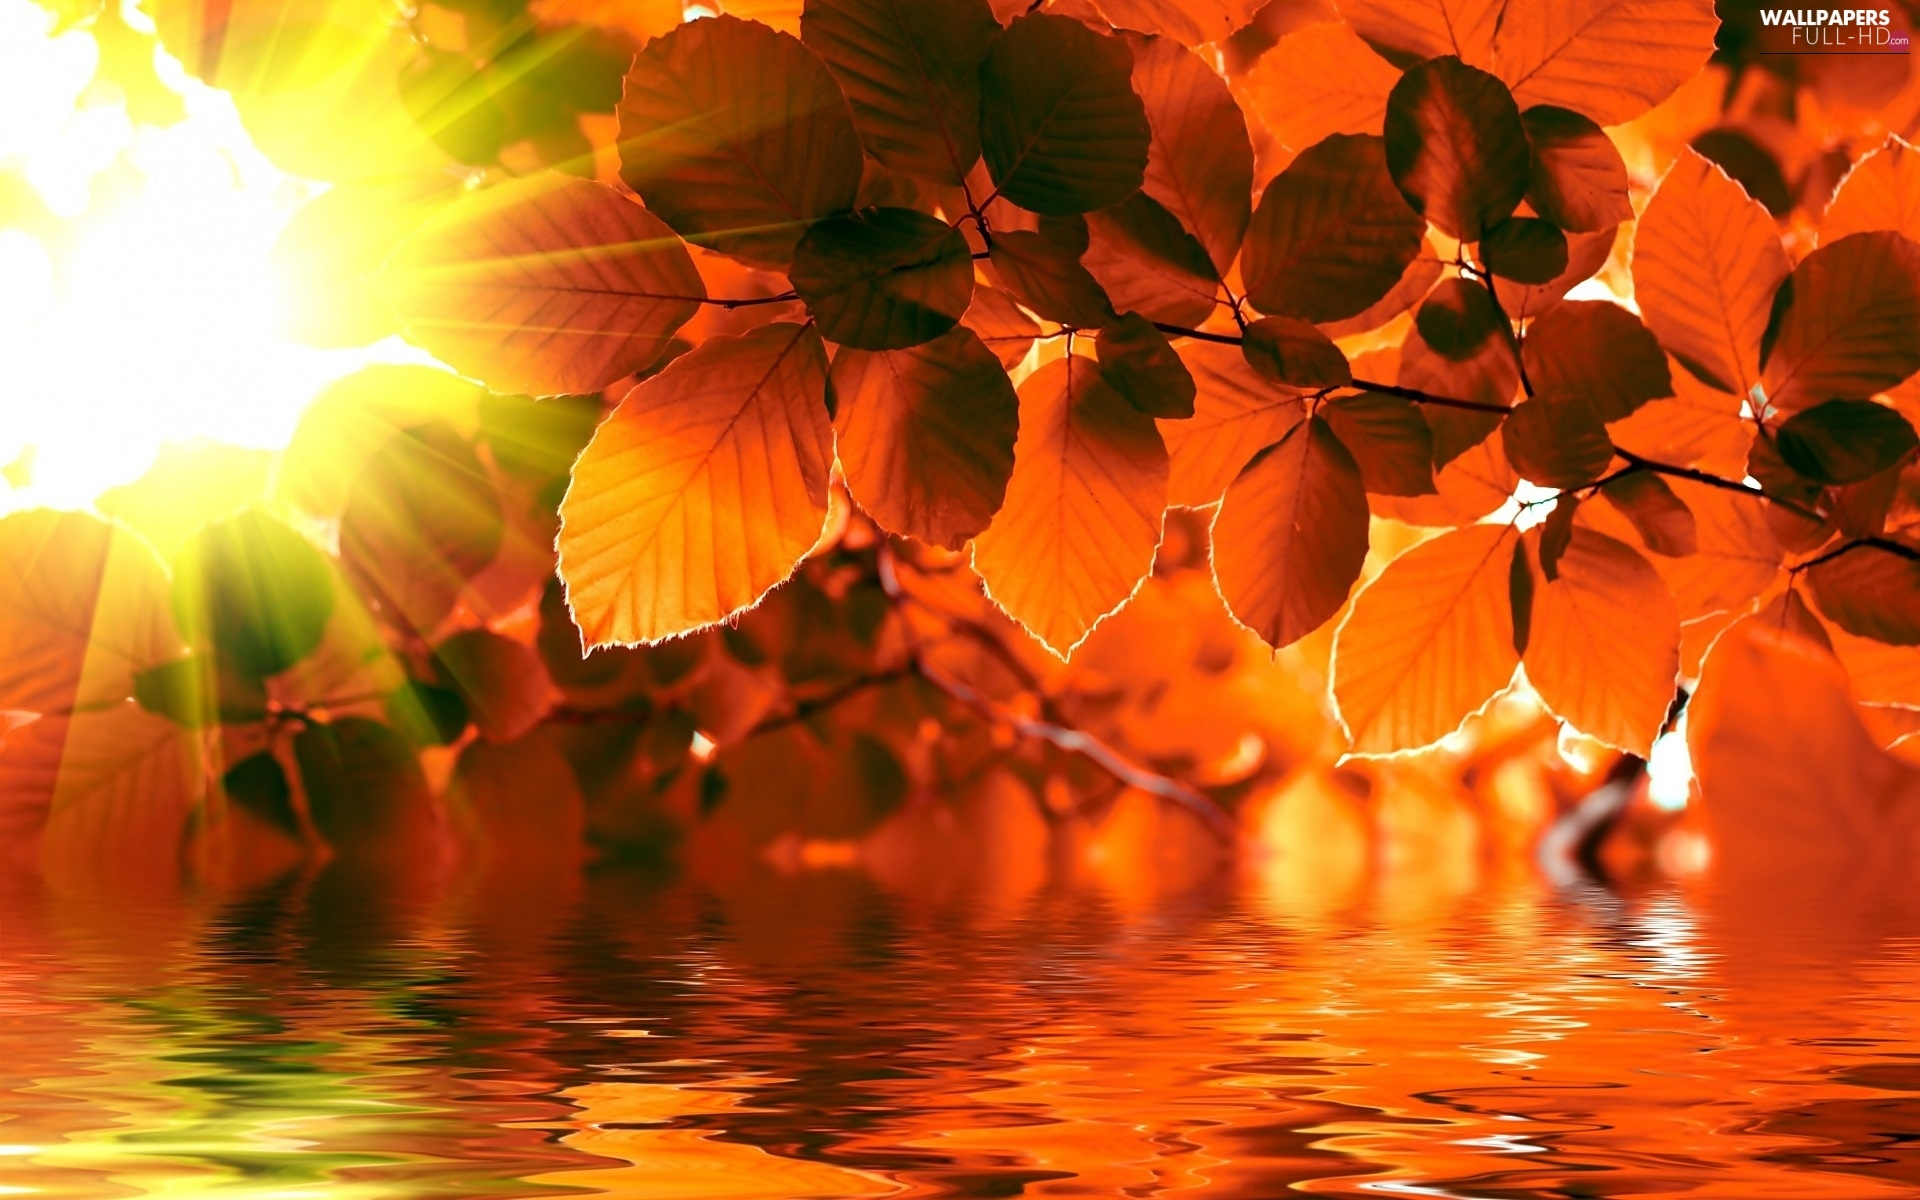 rays of the Sun, water, autumn, Leaf